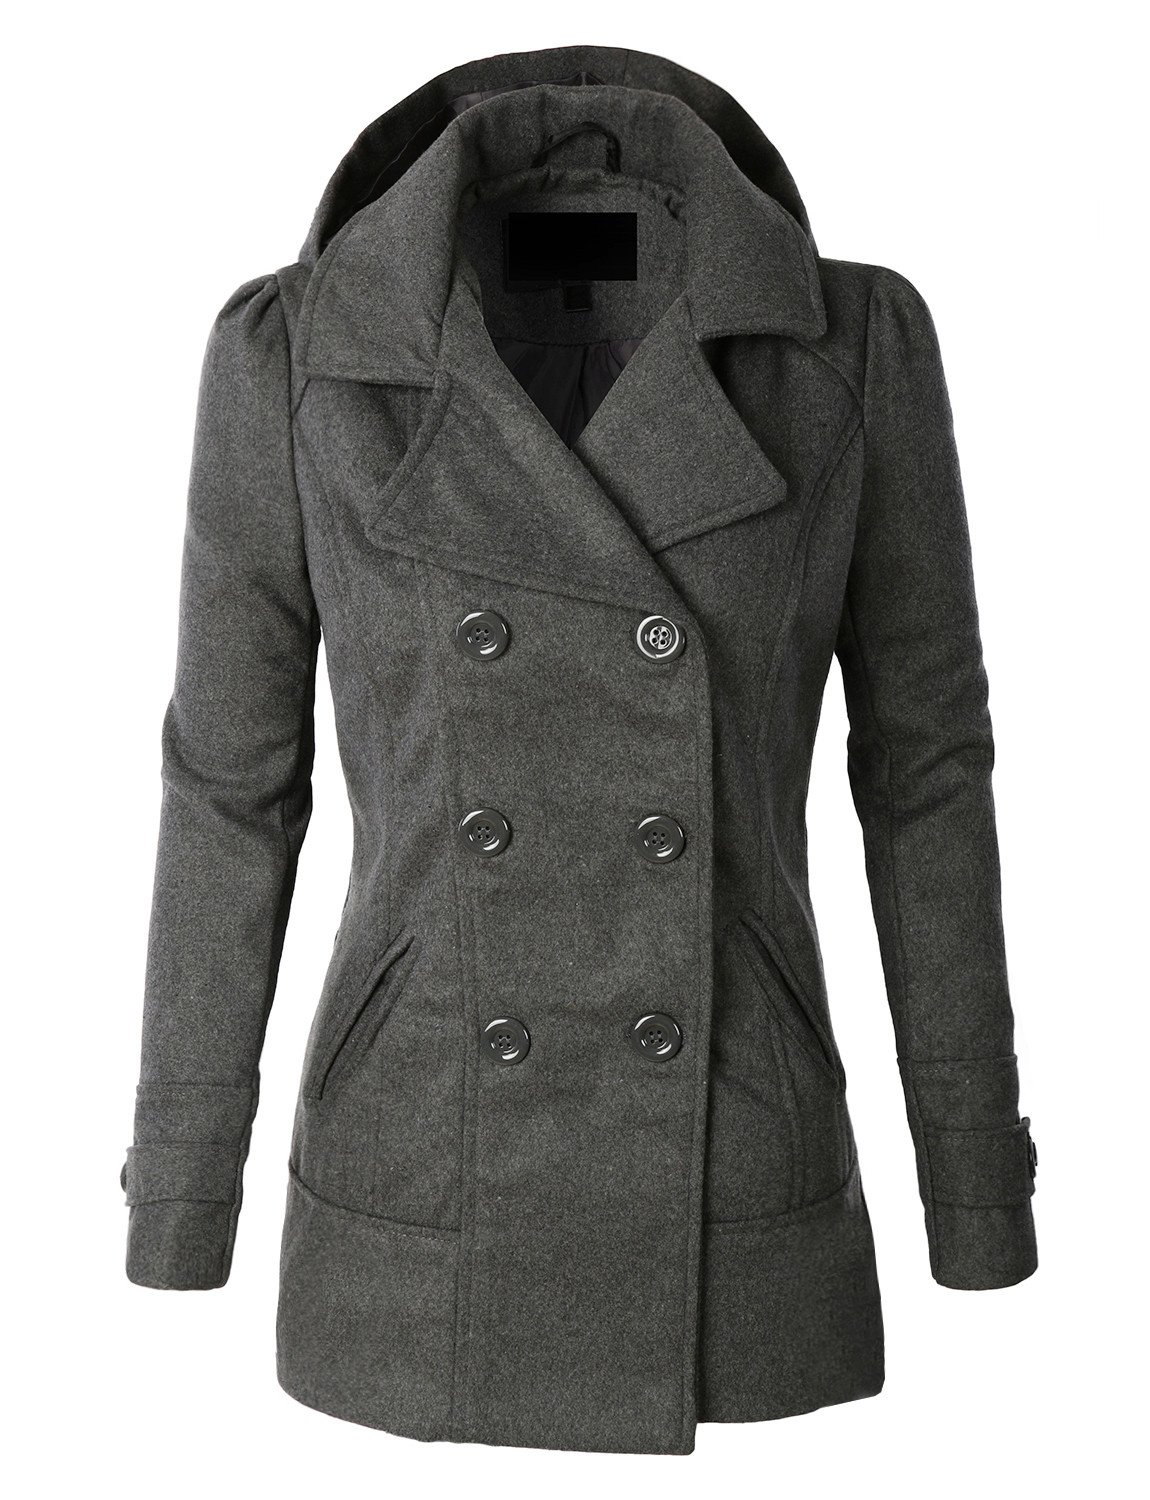 Image of Classic Wool Double Breasted Pea Coat Jacket With Hoodie (CLEARANCE)